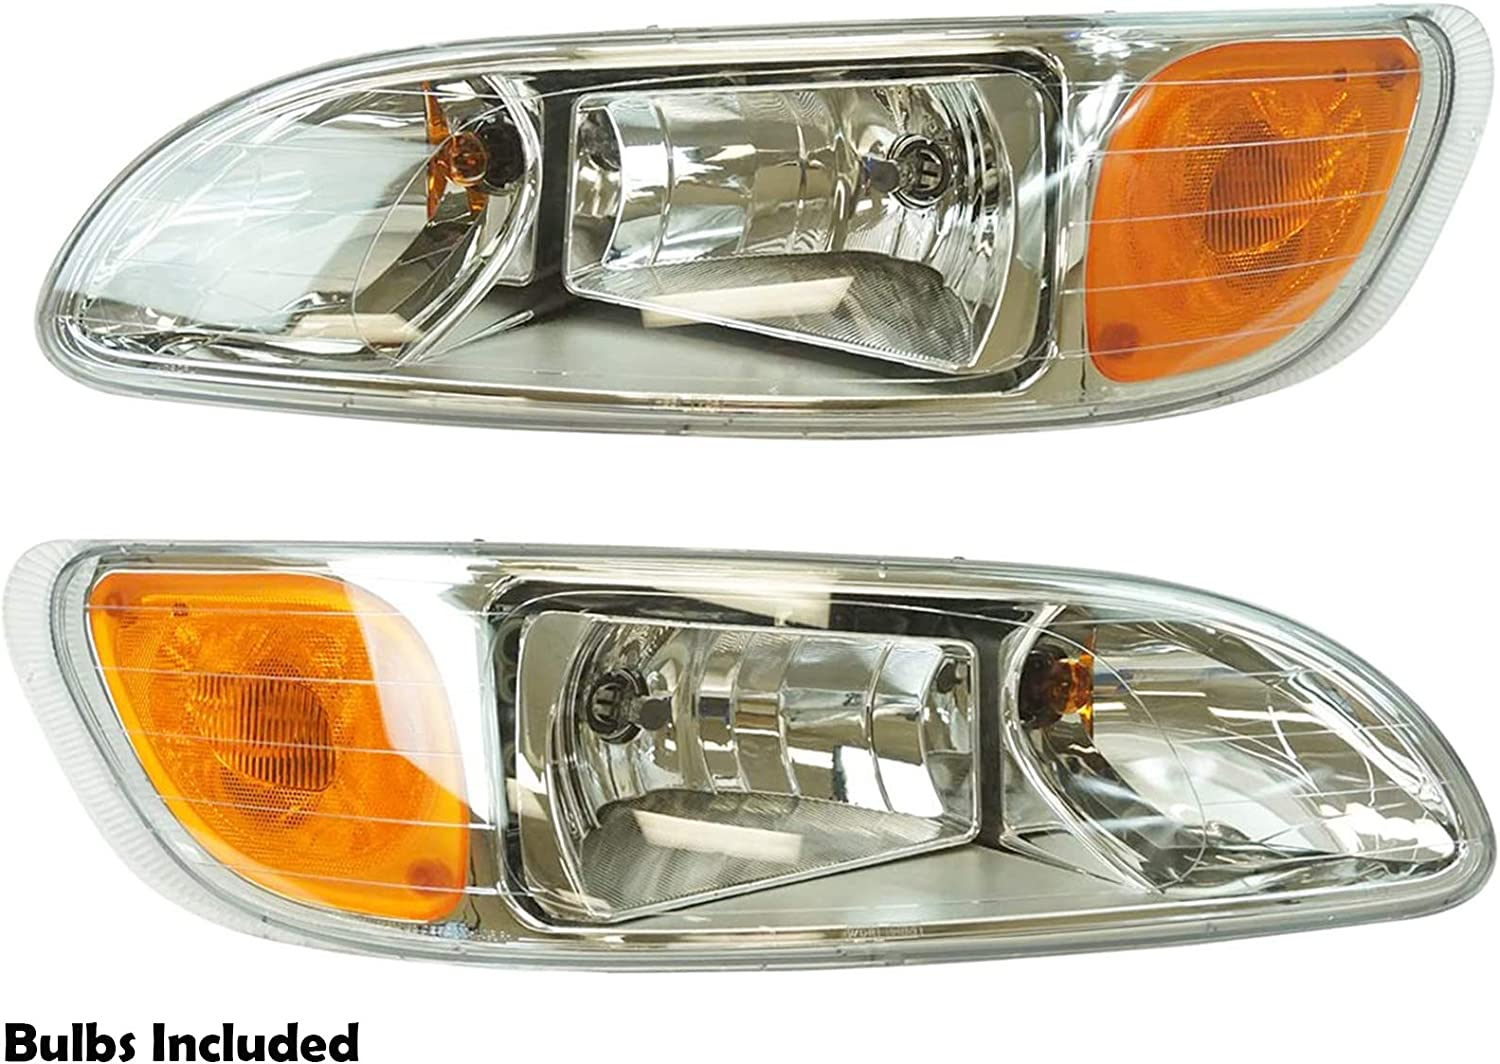 APA Replacement Headlight with Bulb for 325 330 335 00-15 Free shipping anywhere in the San Antonio Mall nation Truck